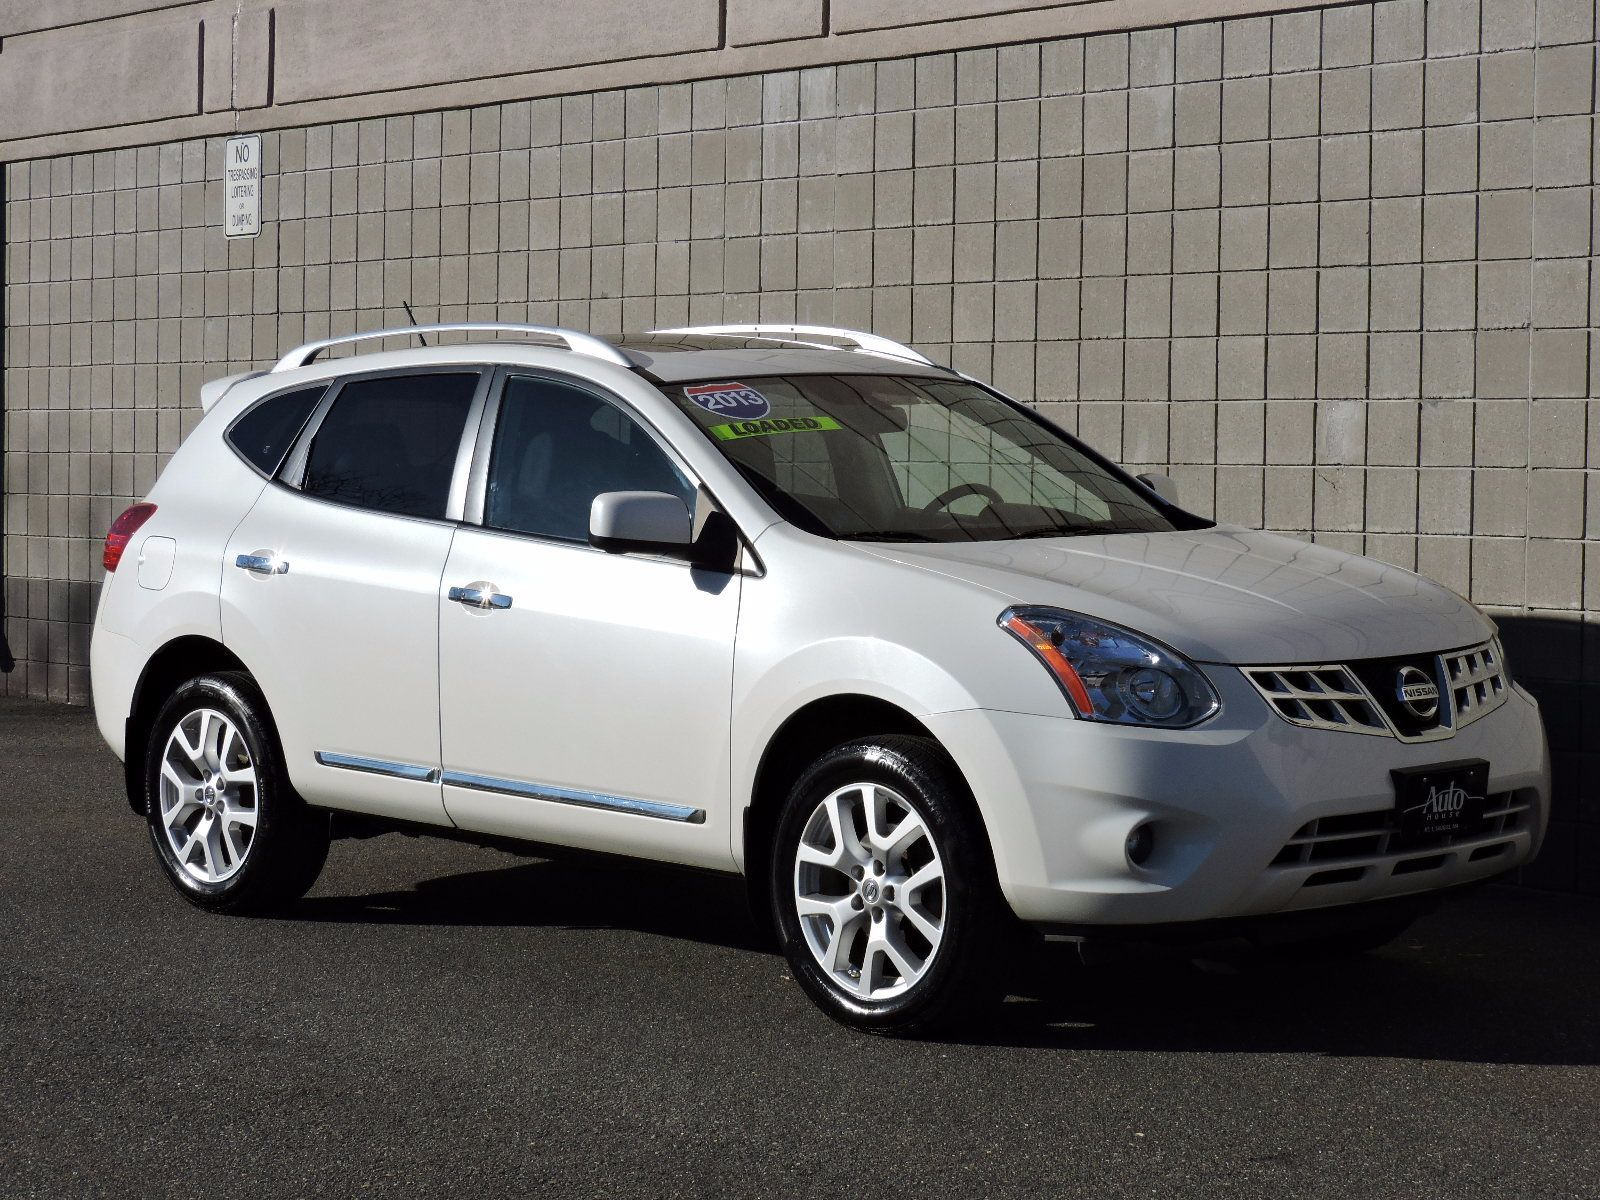 nissan middletown model auto newfield new used waterbury haven in hartford sales connecticut middlesex ct rogue